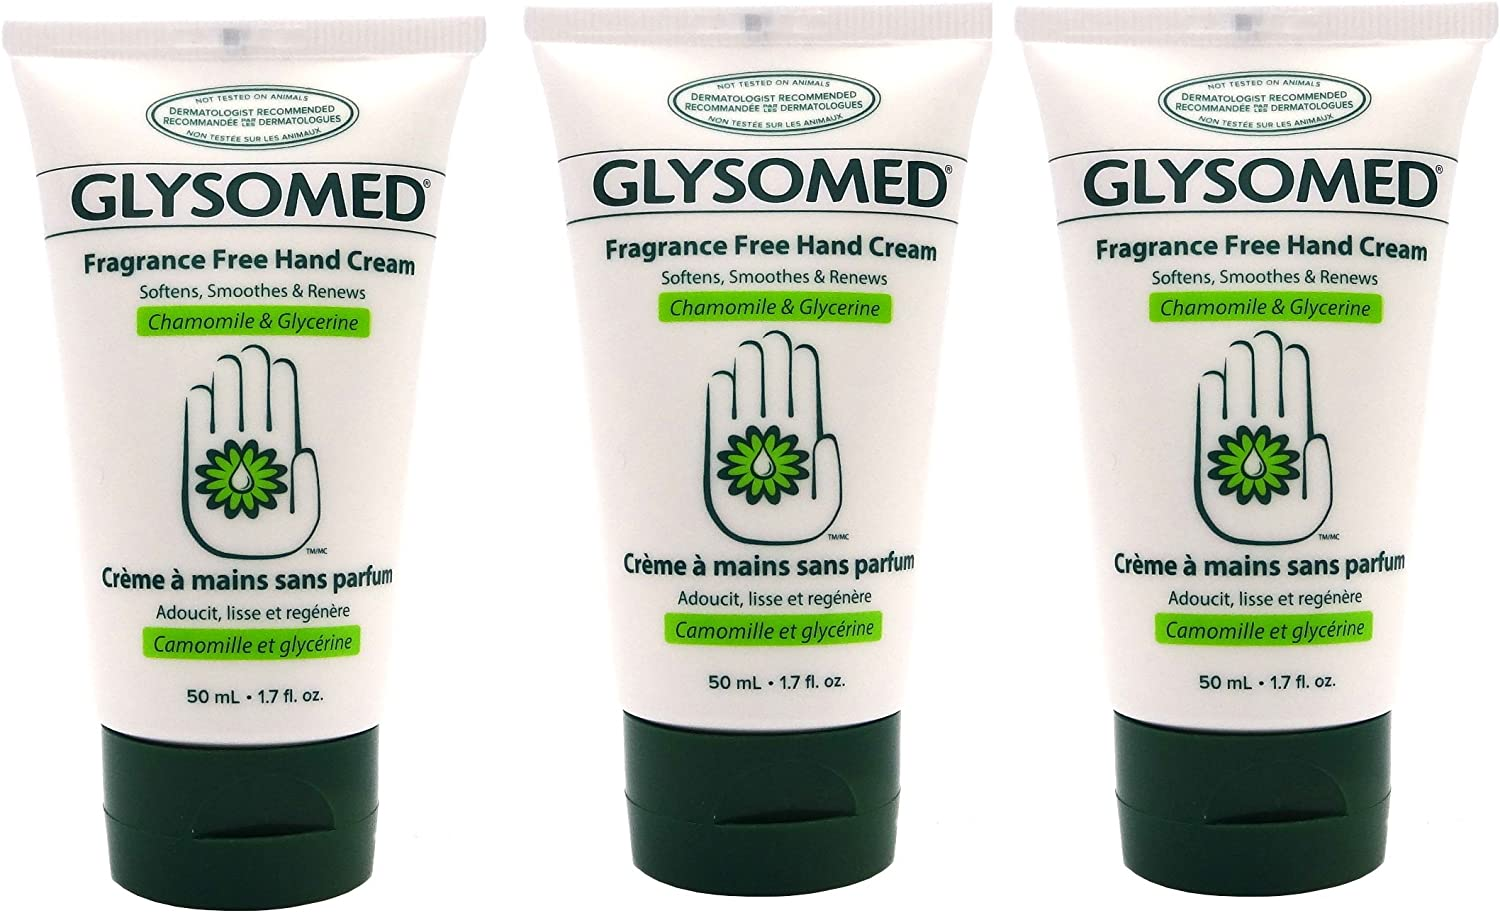 Glysomed Chamomile Hand Cream, 50ml Travel Size (Soothe